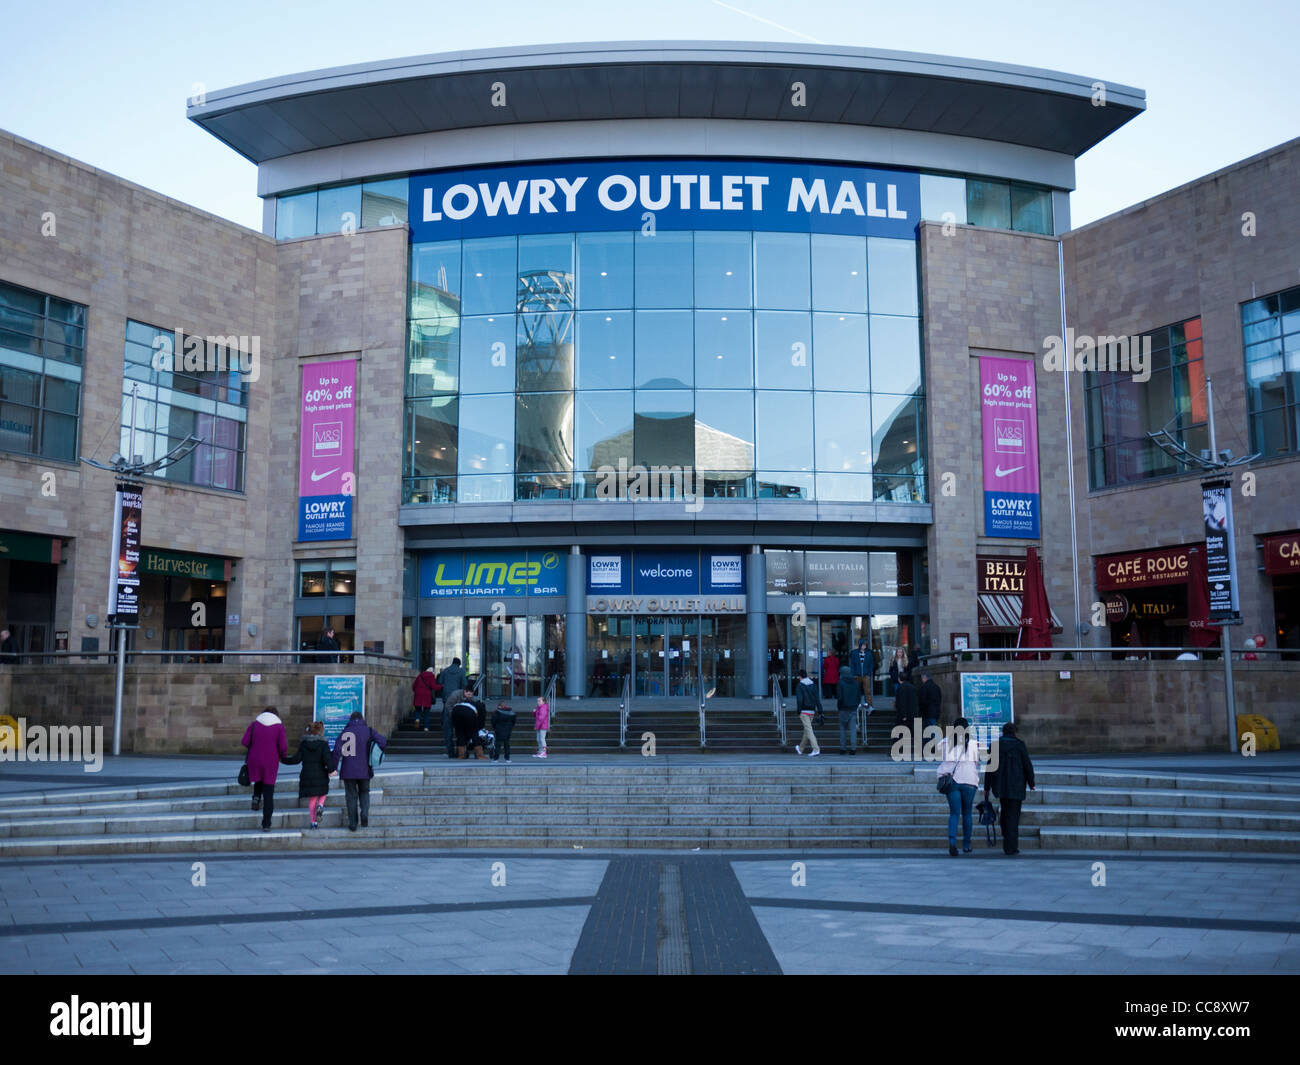 The Lowry retail outlet at Salford Quays Manchester England UK - Stock Image